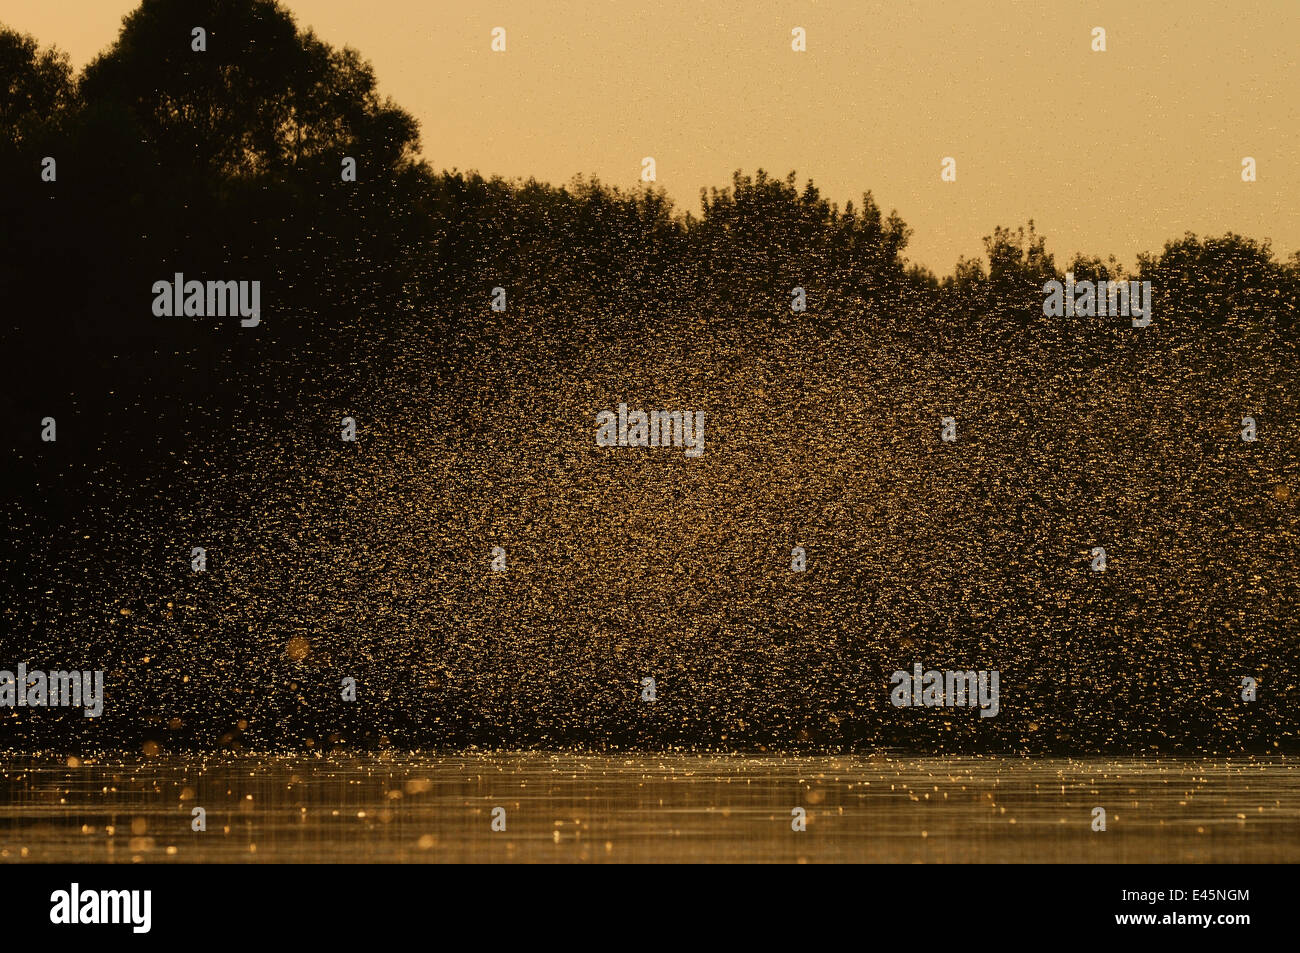 Female Long-tailed / Tisza mayfly (Palingani a longicauda) rise up in the air soon after mating, where they form - Stock Image